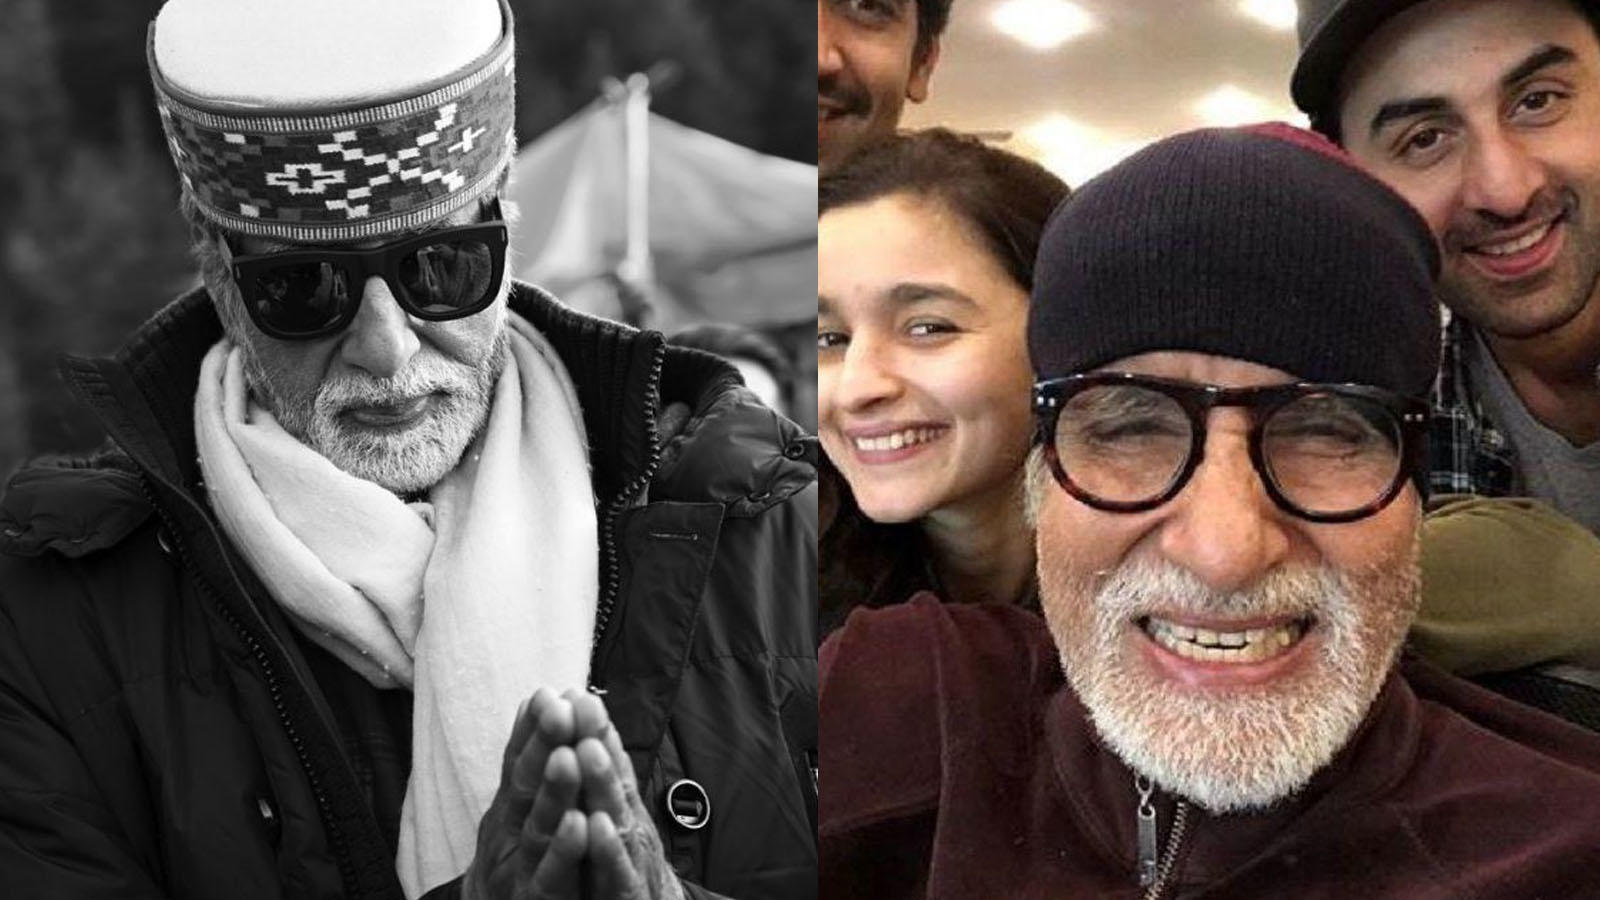 Amitabh Bachchan pens down a sweet thank you note for his fans in Manali for their love and well-wishes